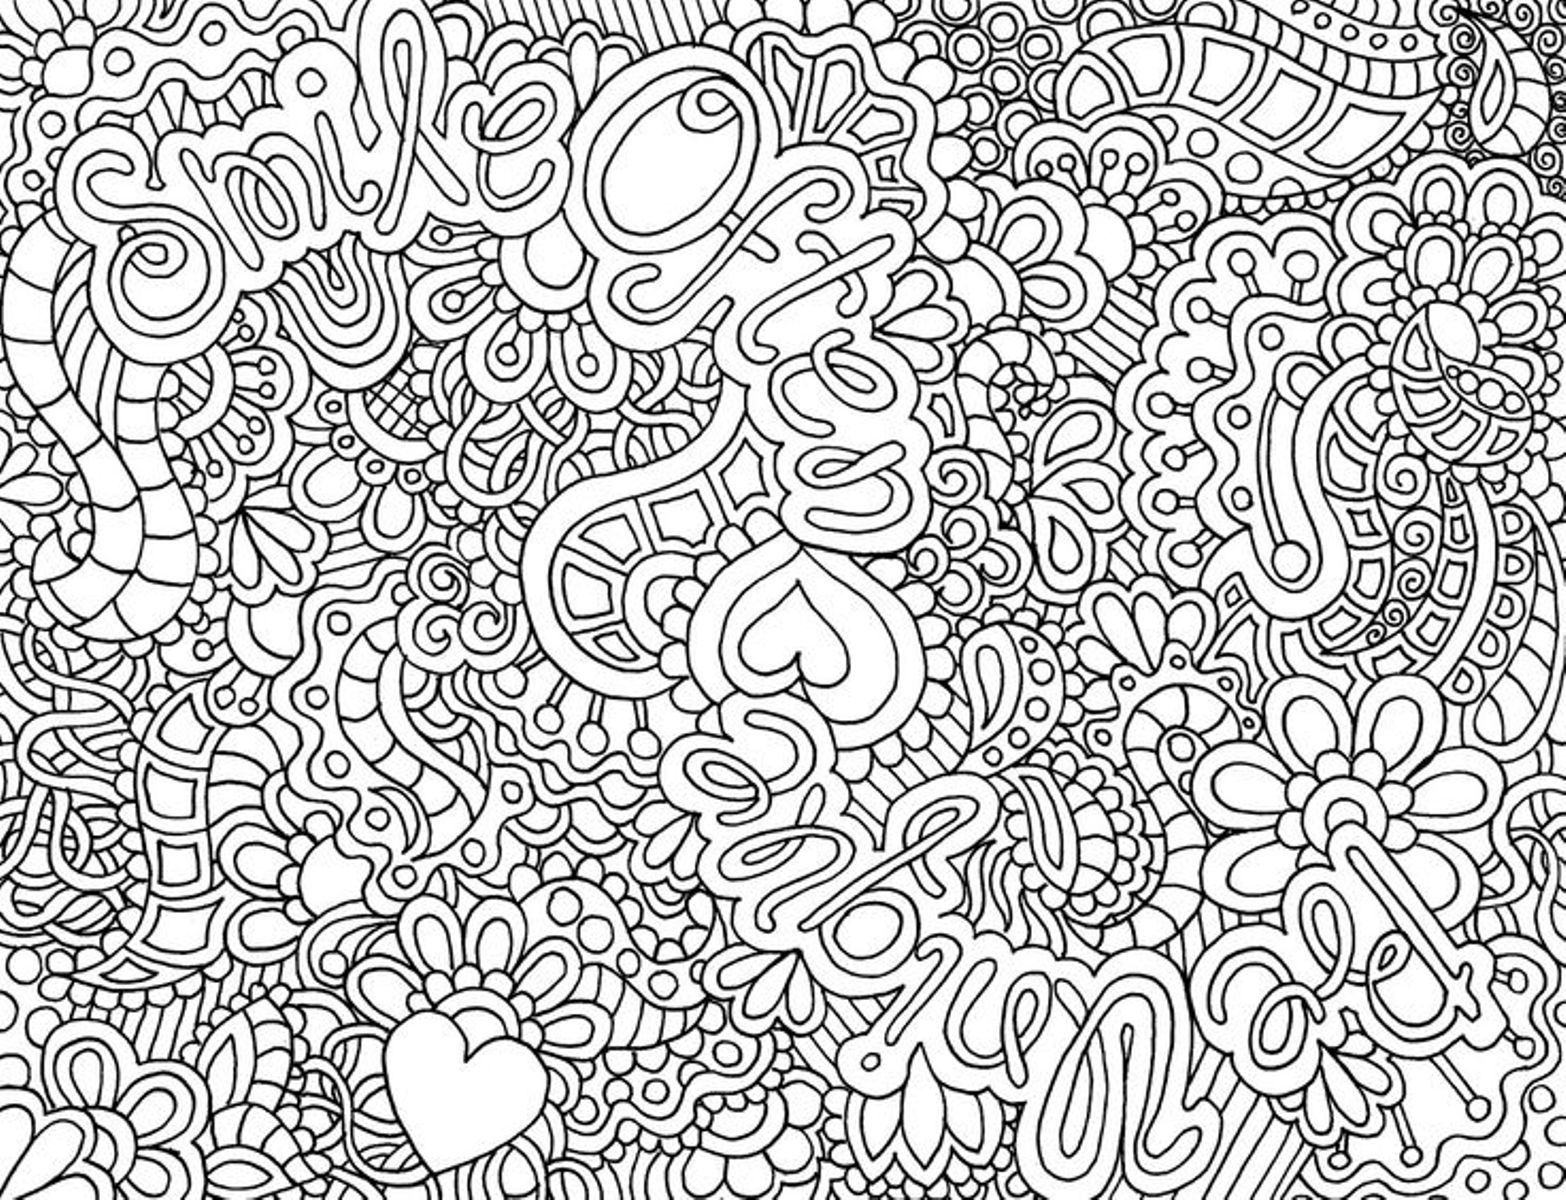 explore adult colouring pages kids colouring and more - Online Coloring Pages For Adults